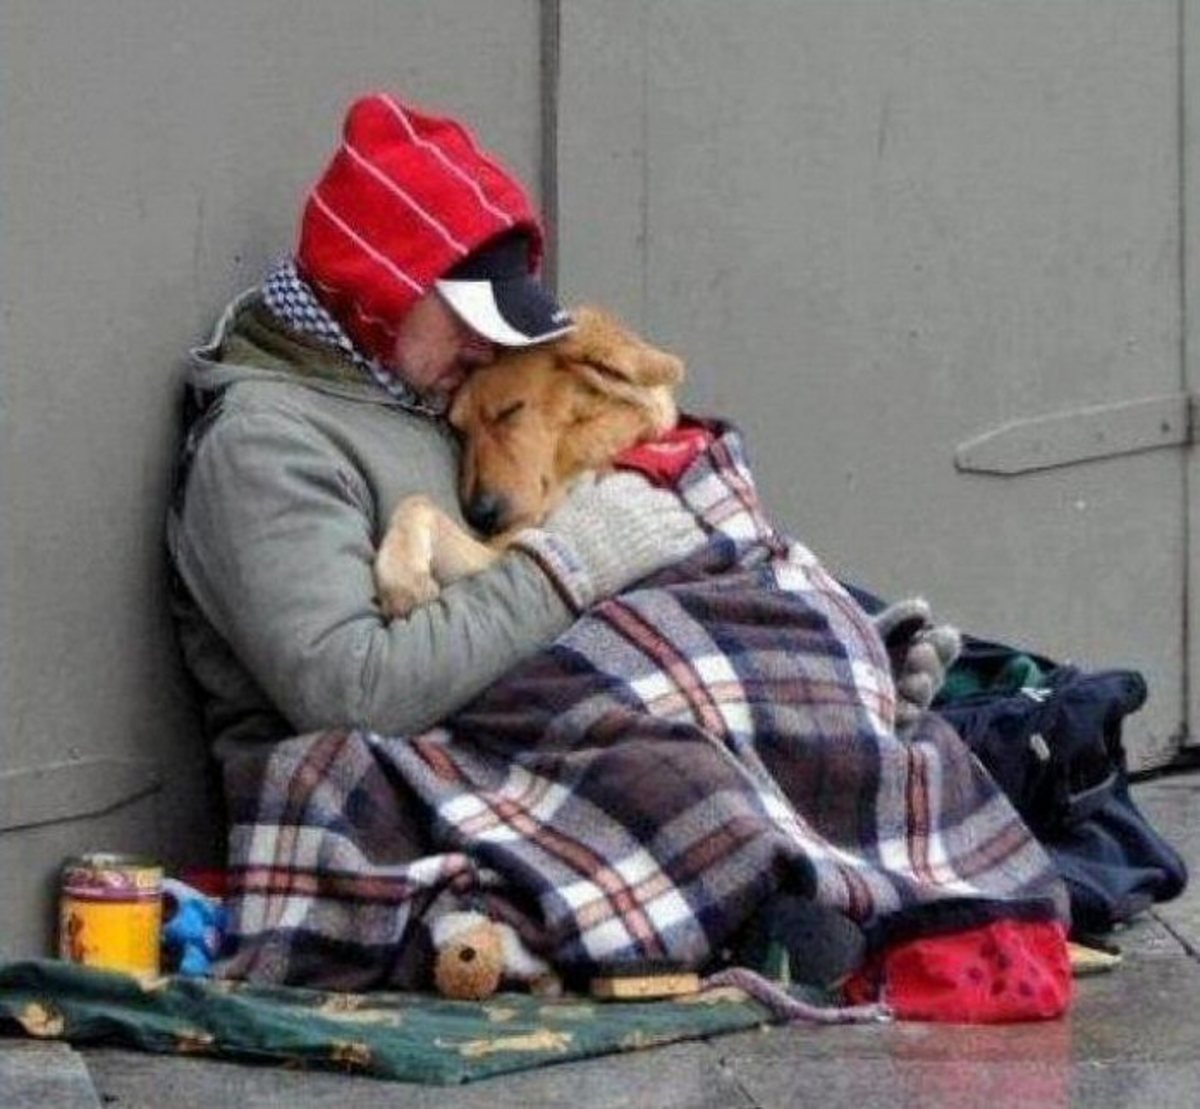 Danny a neglected little dog finds happiness with the homeless on the streets of L.A.